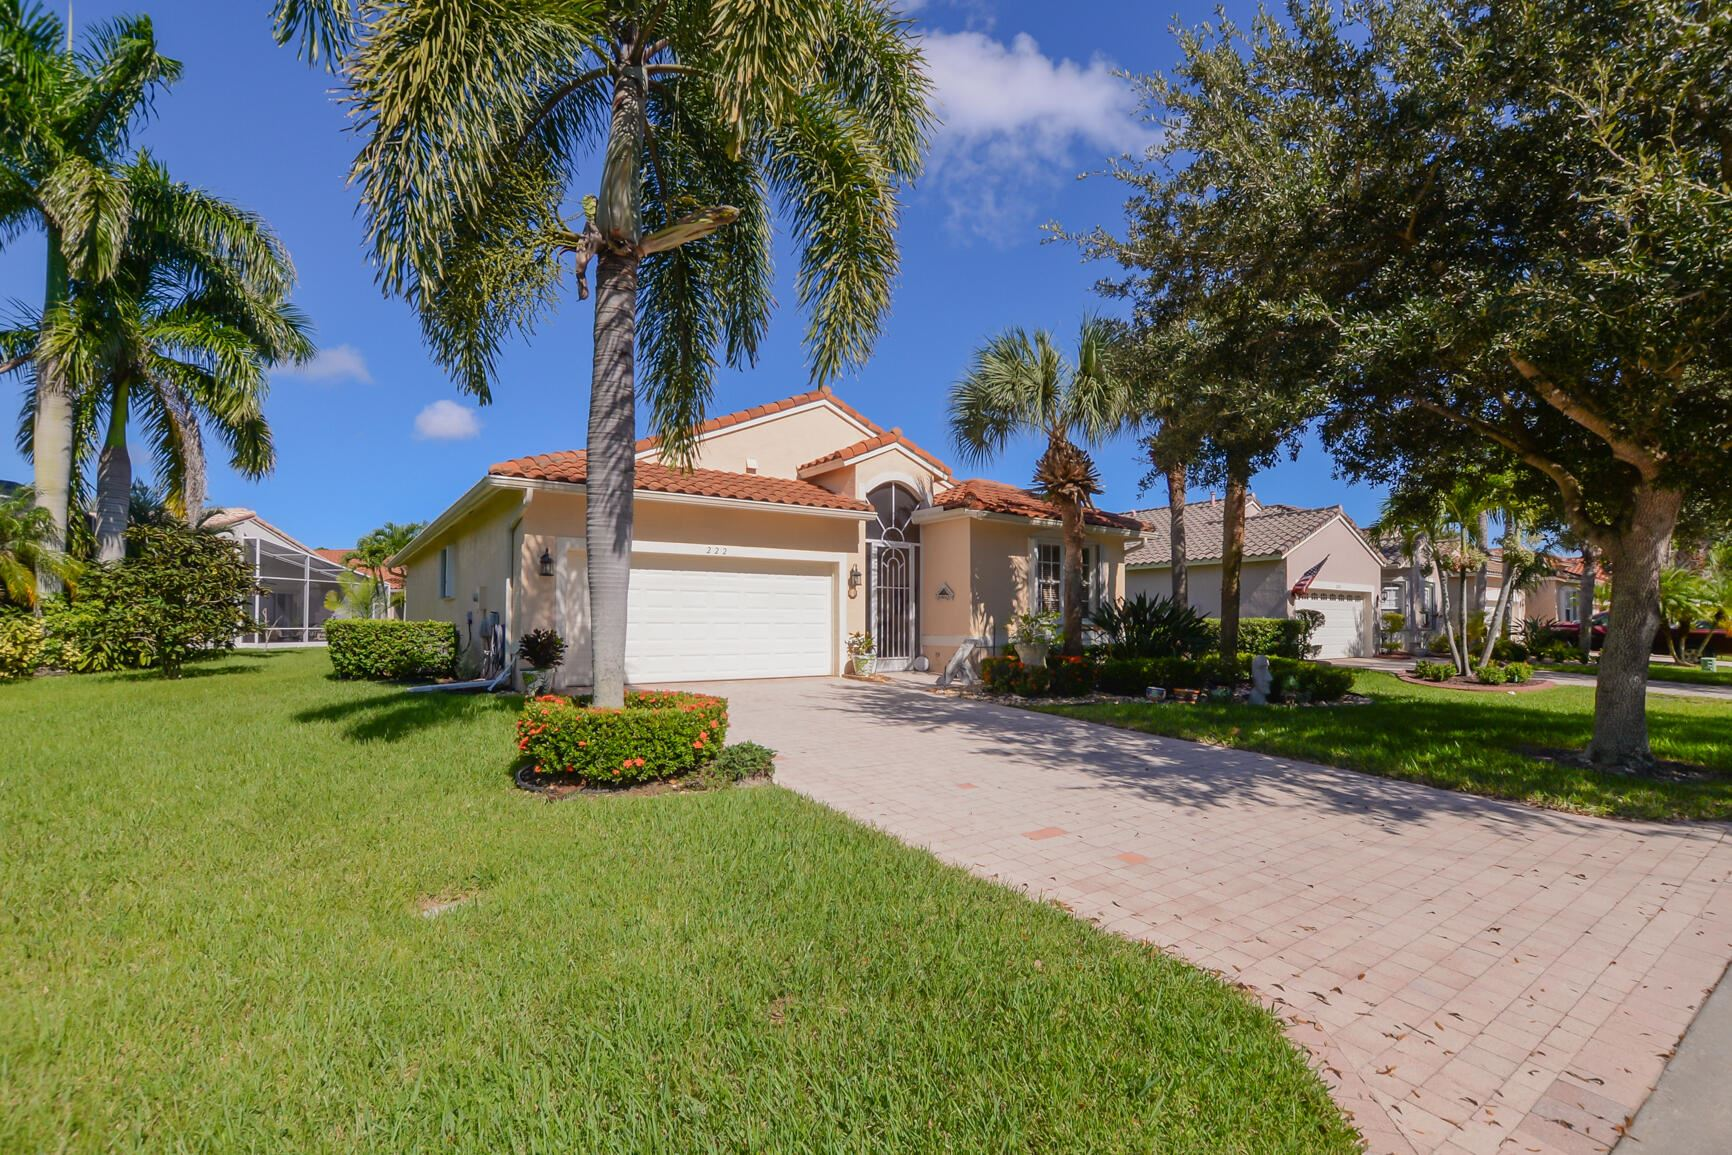 Photo of 222 NW Chorale Way, Port Saint Lucie, FL 34986 (MLS # RX-10753074)